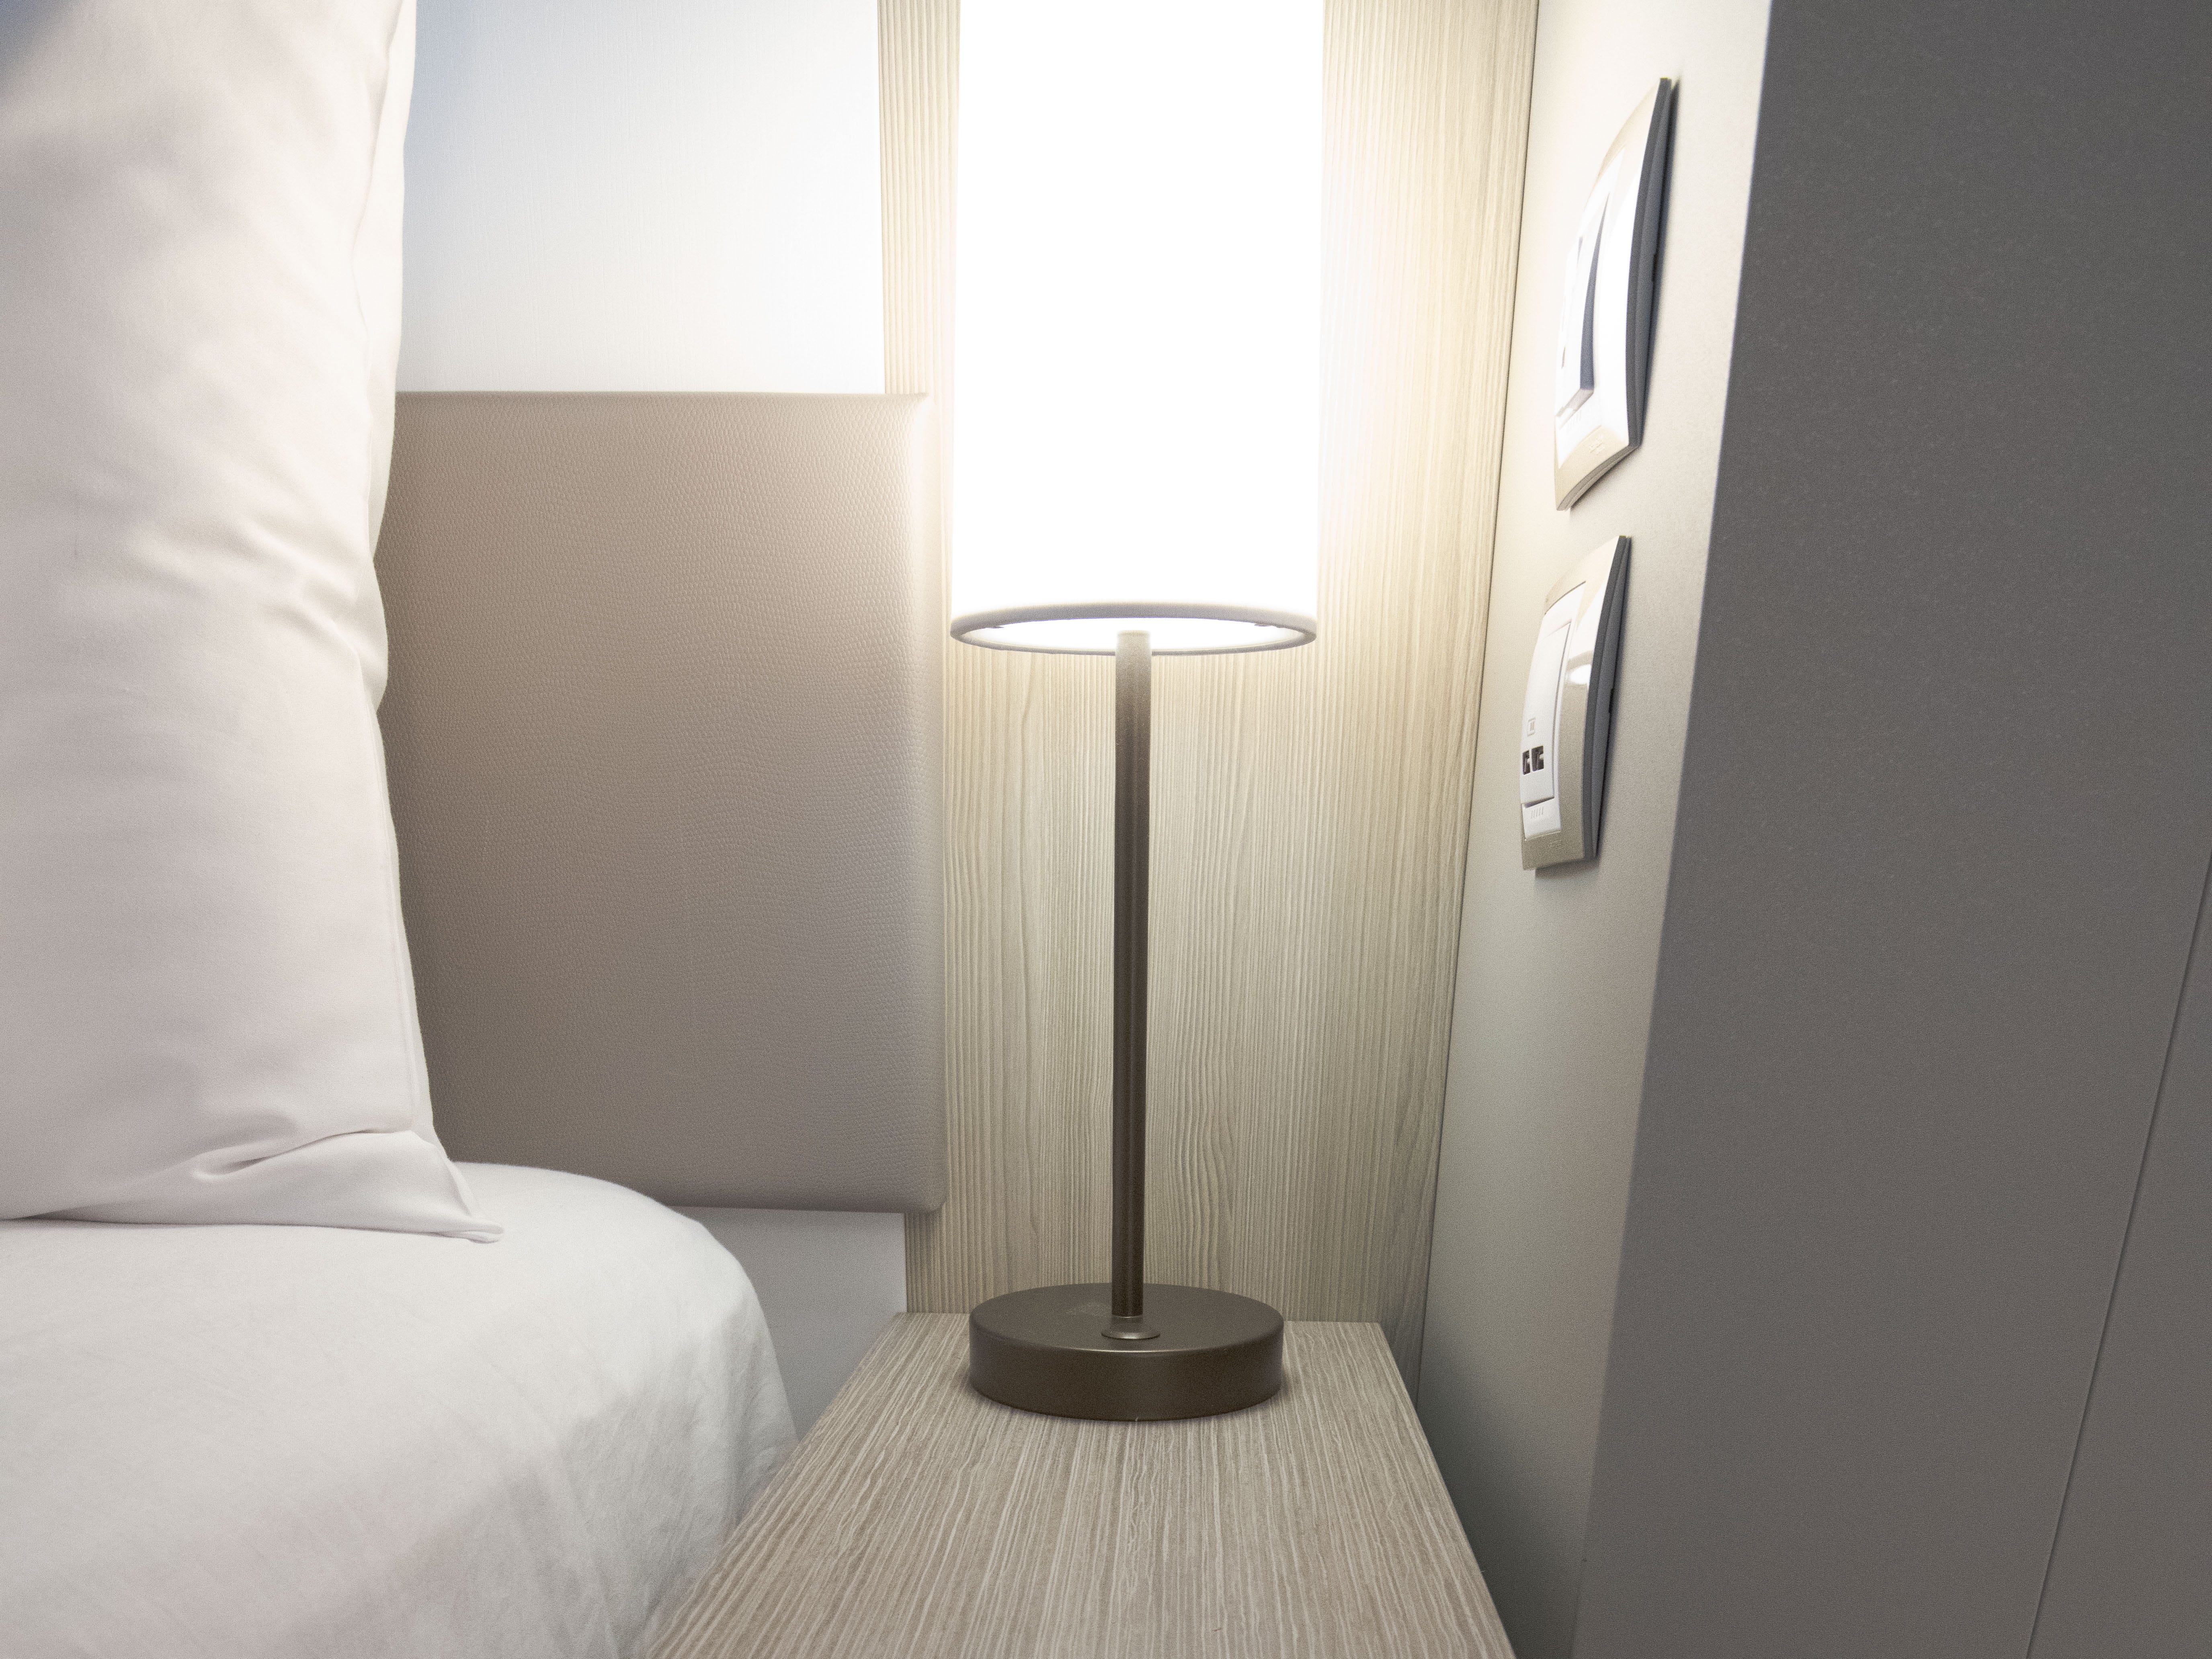 Small tables are located on each side of the bed in Edge Stateroom with Infinite Veranda cabins.